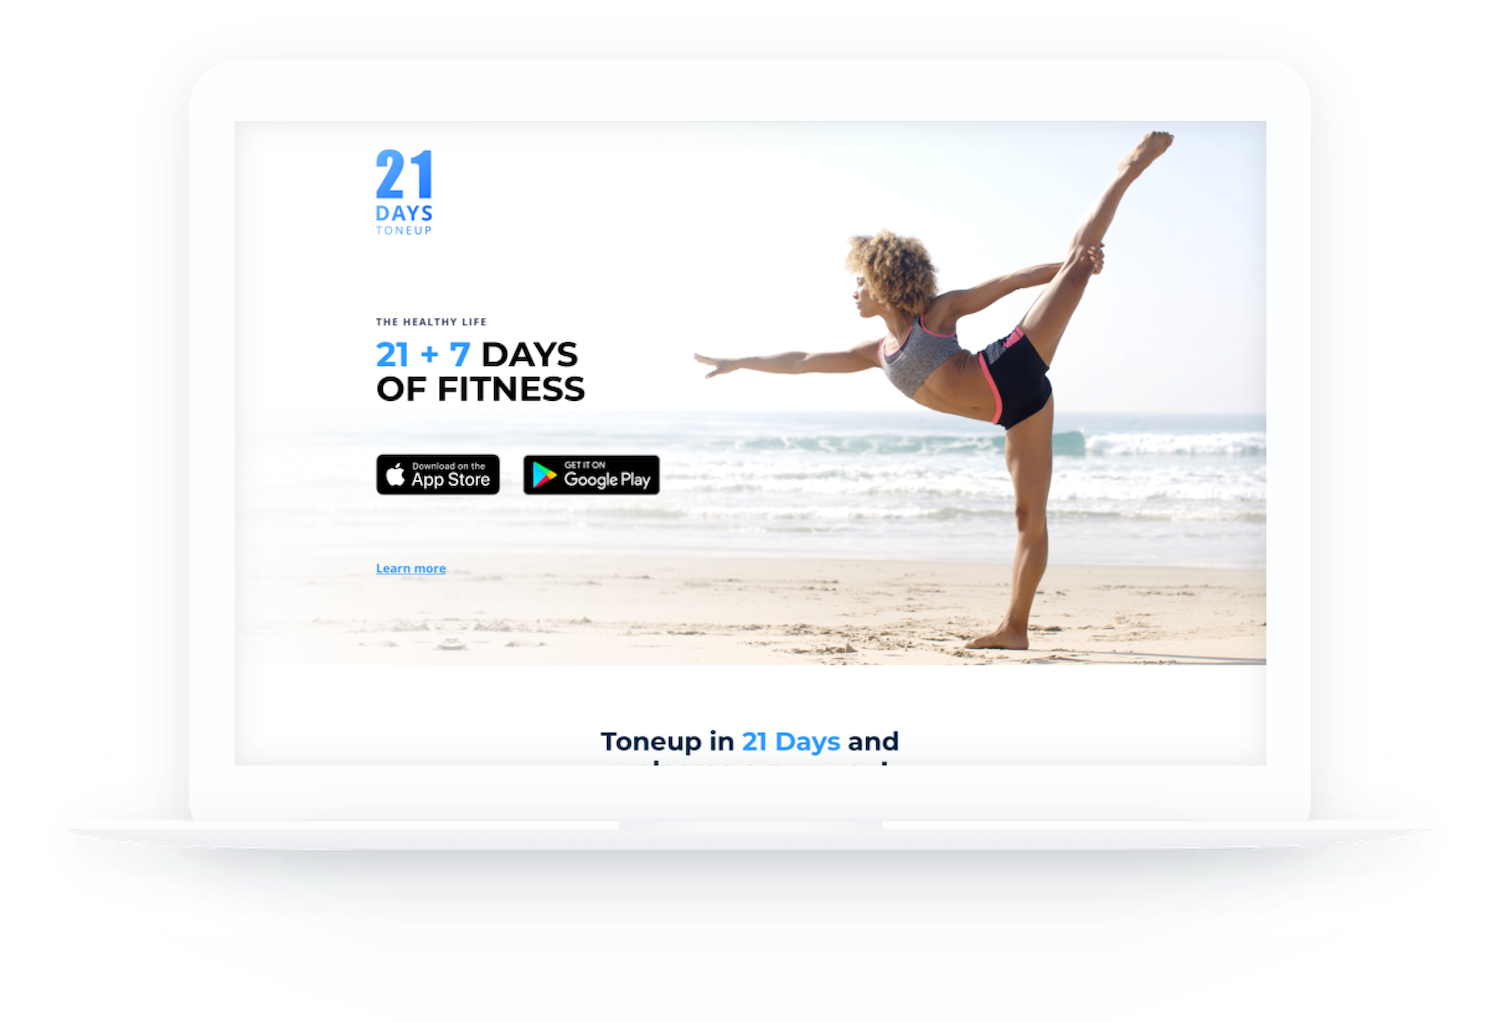 21 days android app